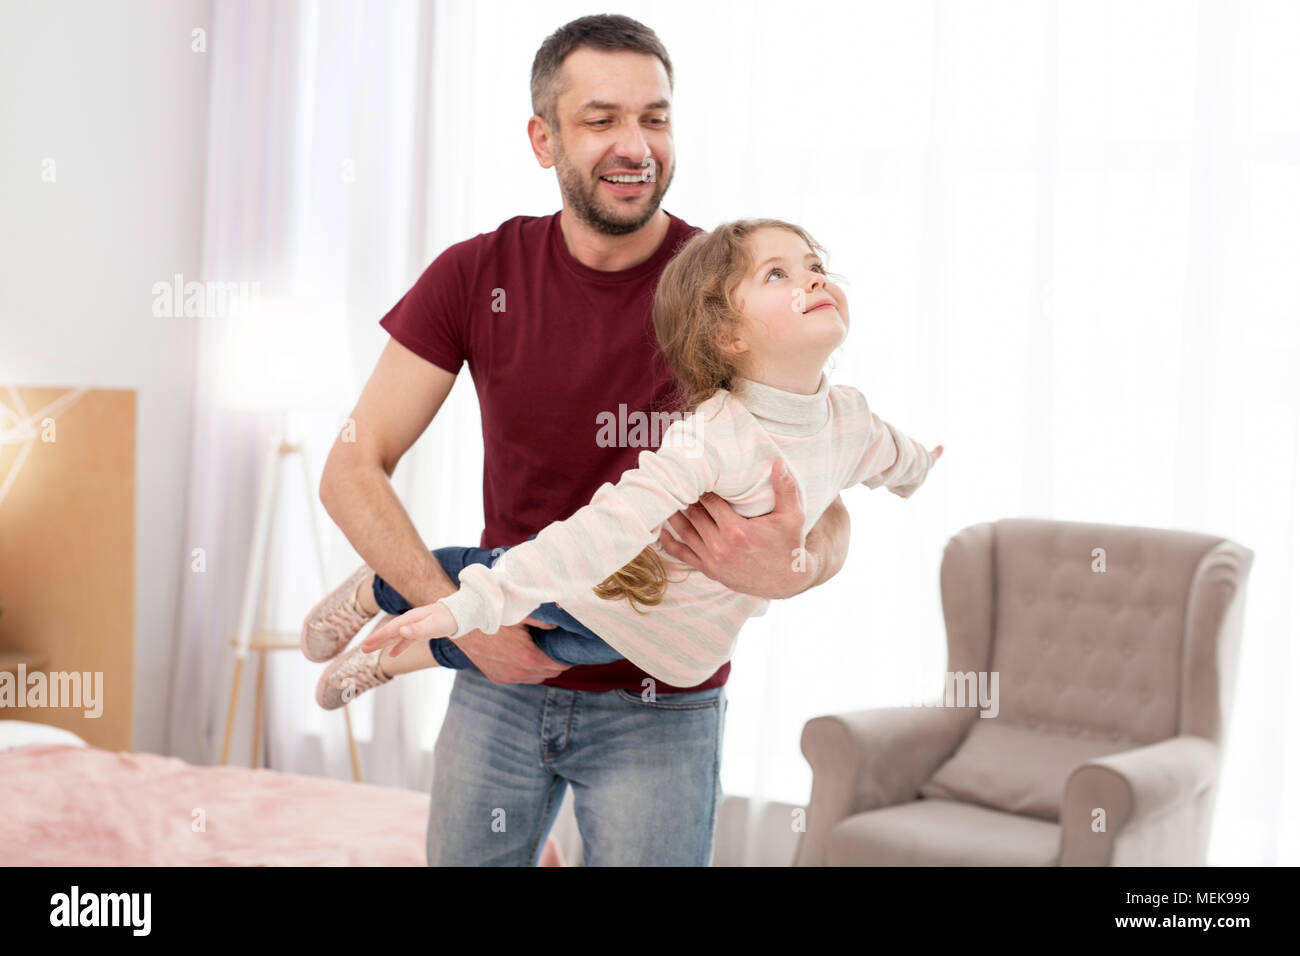 Cheerful father having fun with his daughter - Stock Image